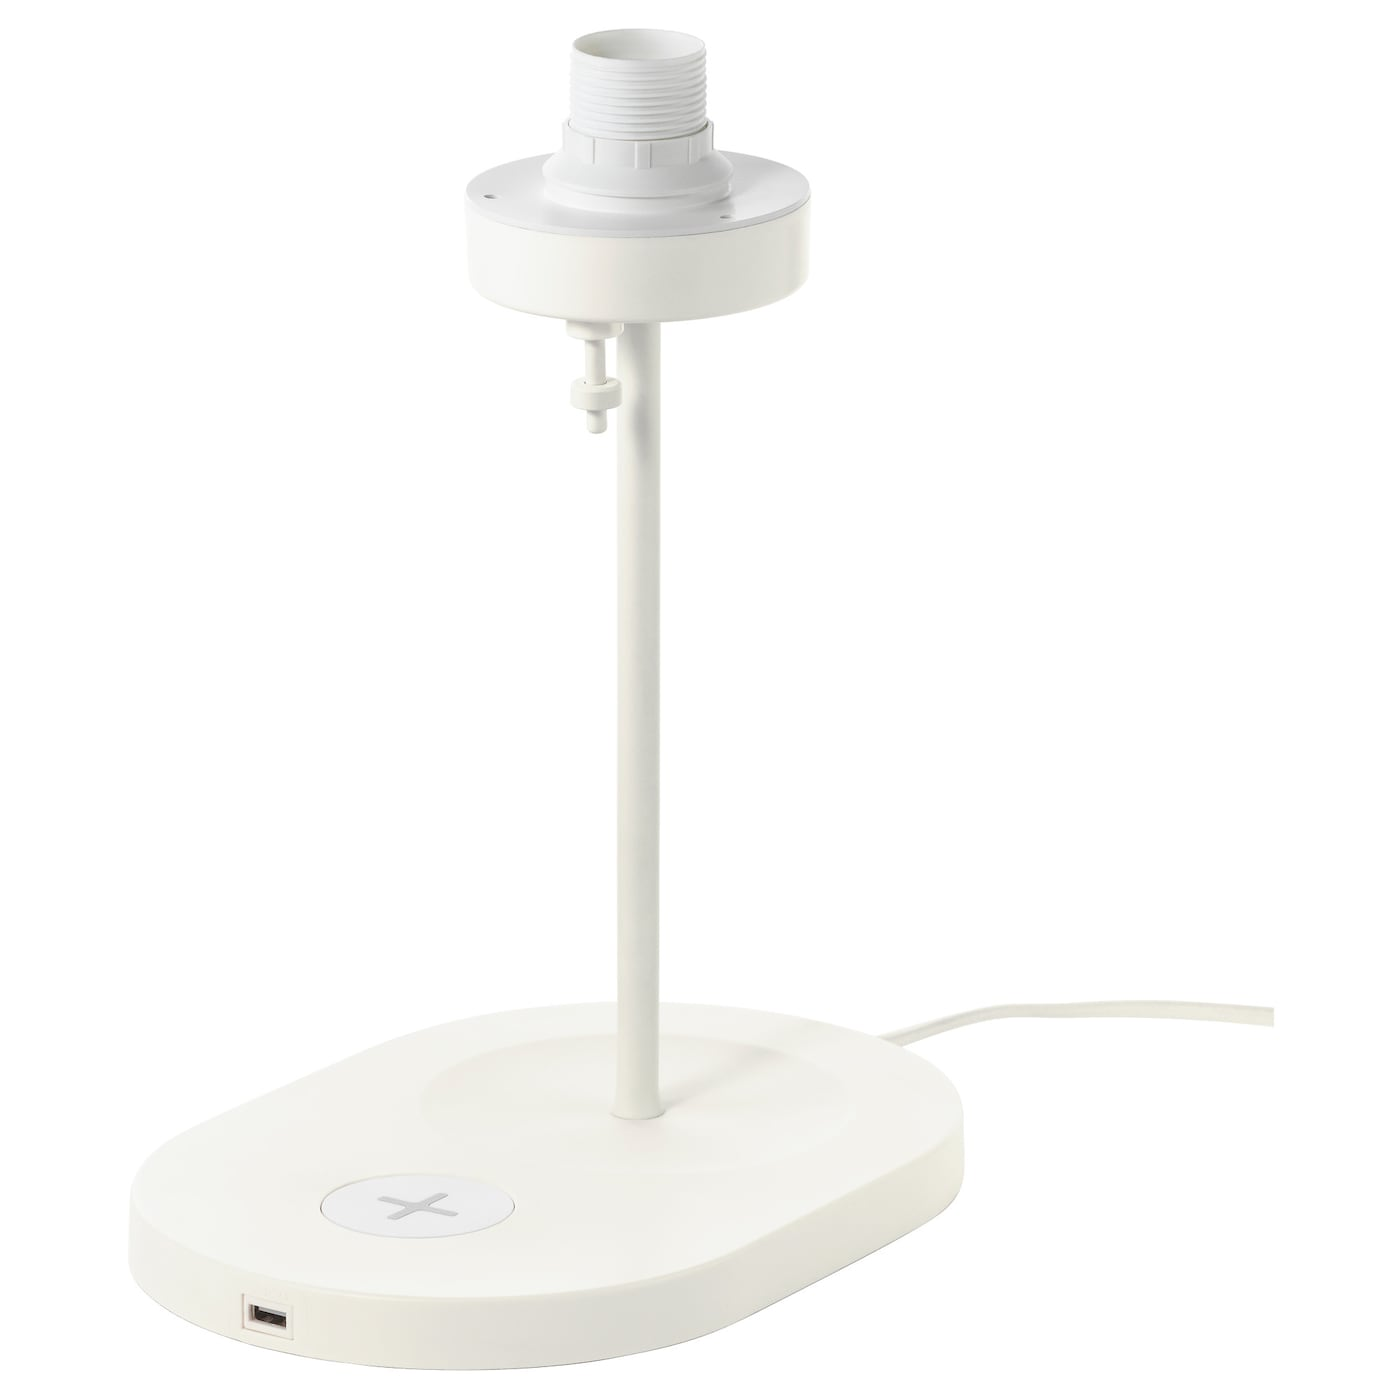 IKEA VARV Table Lamp Base W Wireless Charging